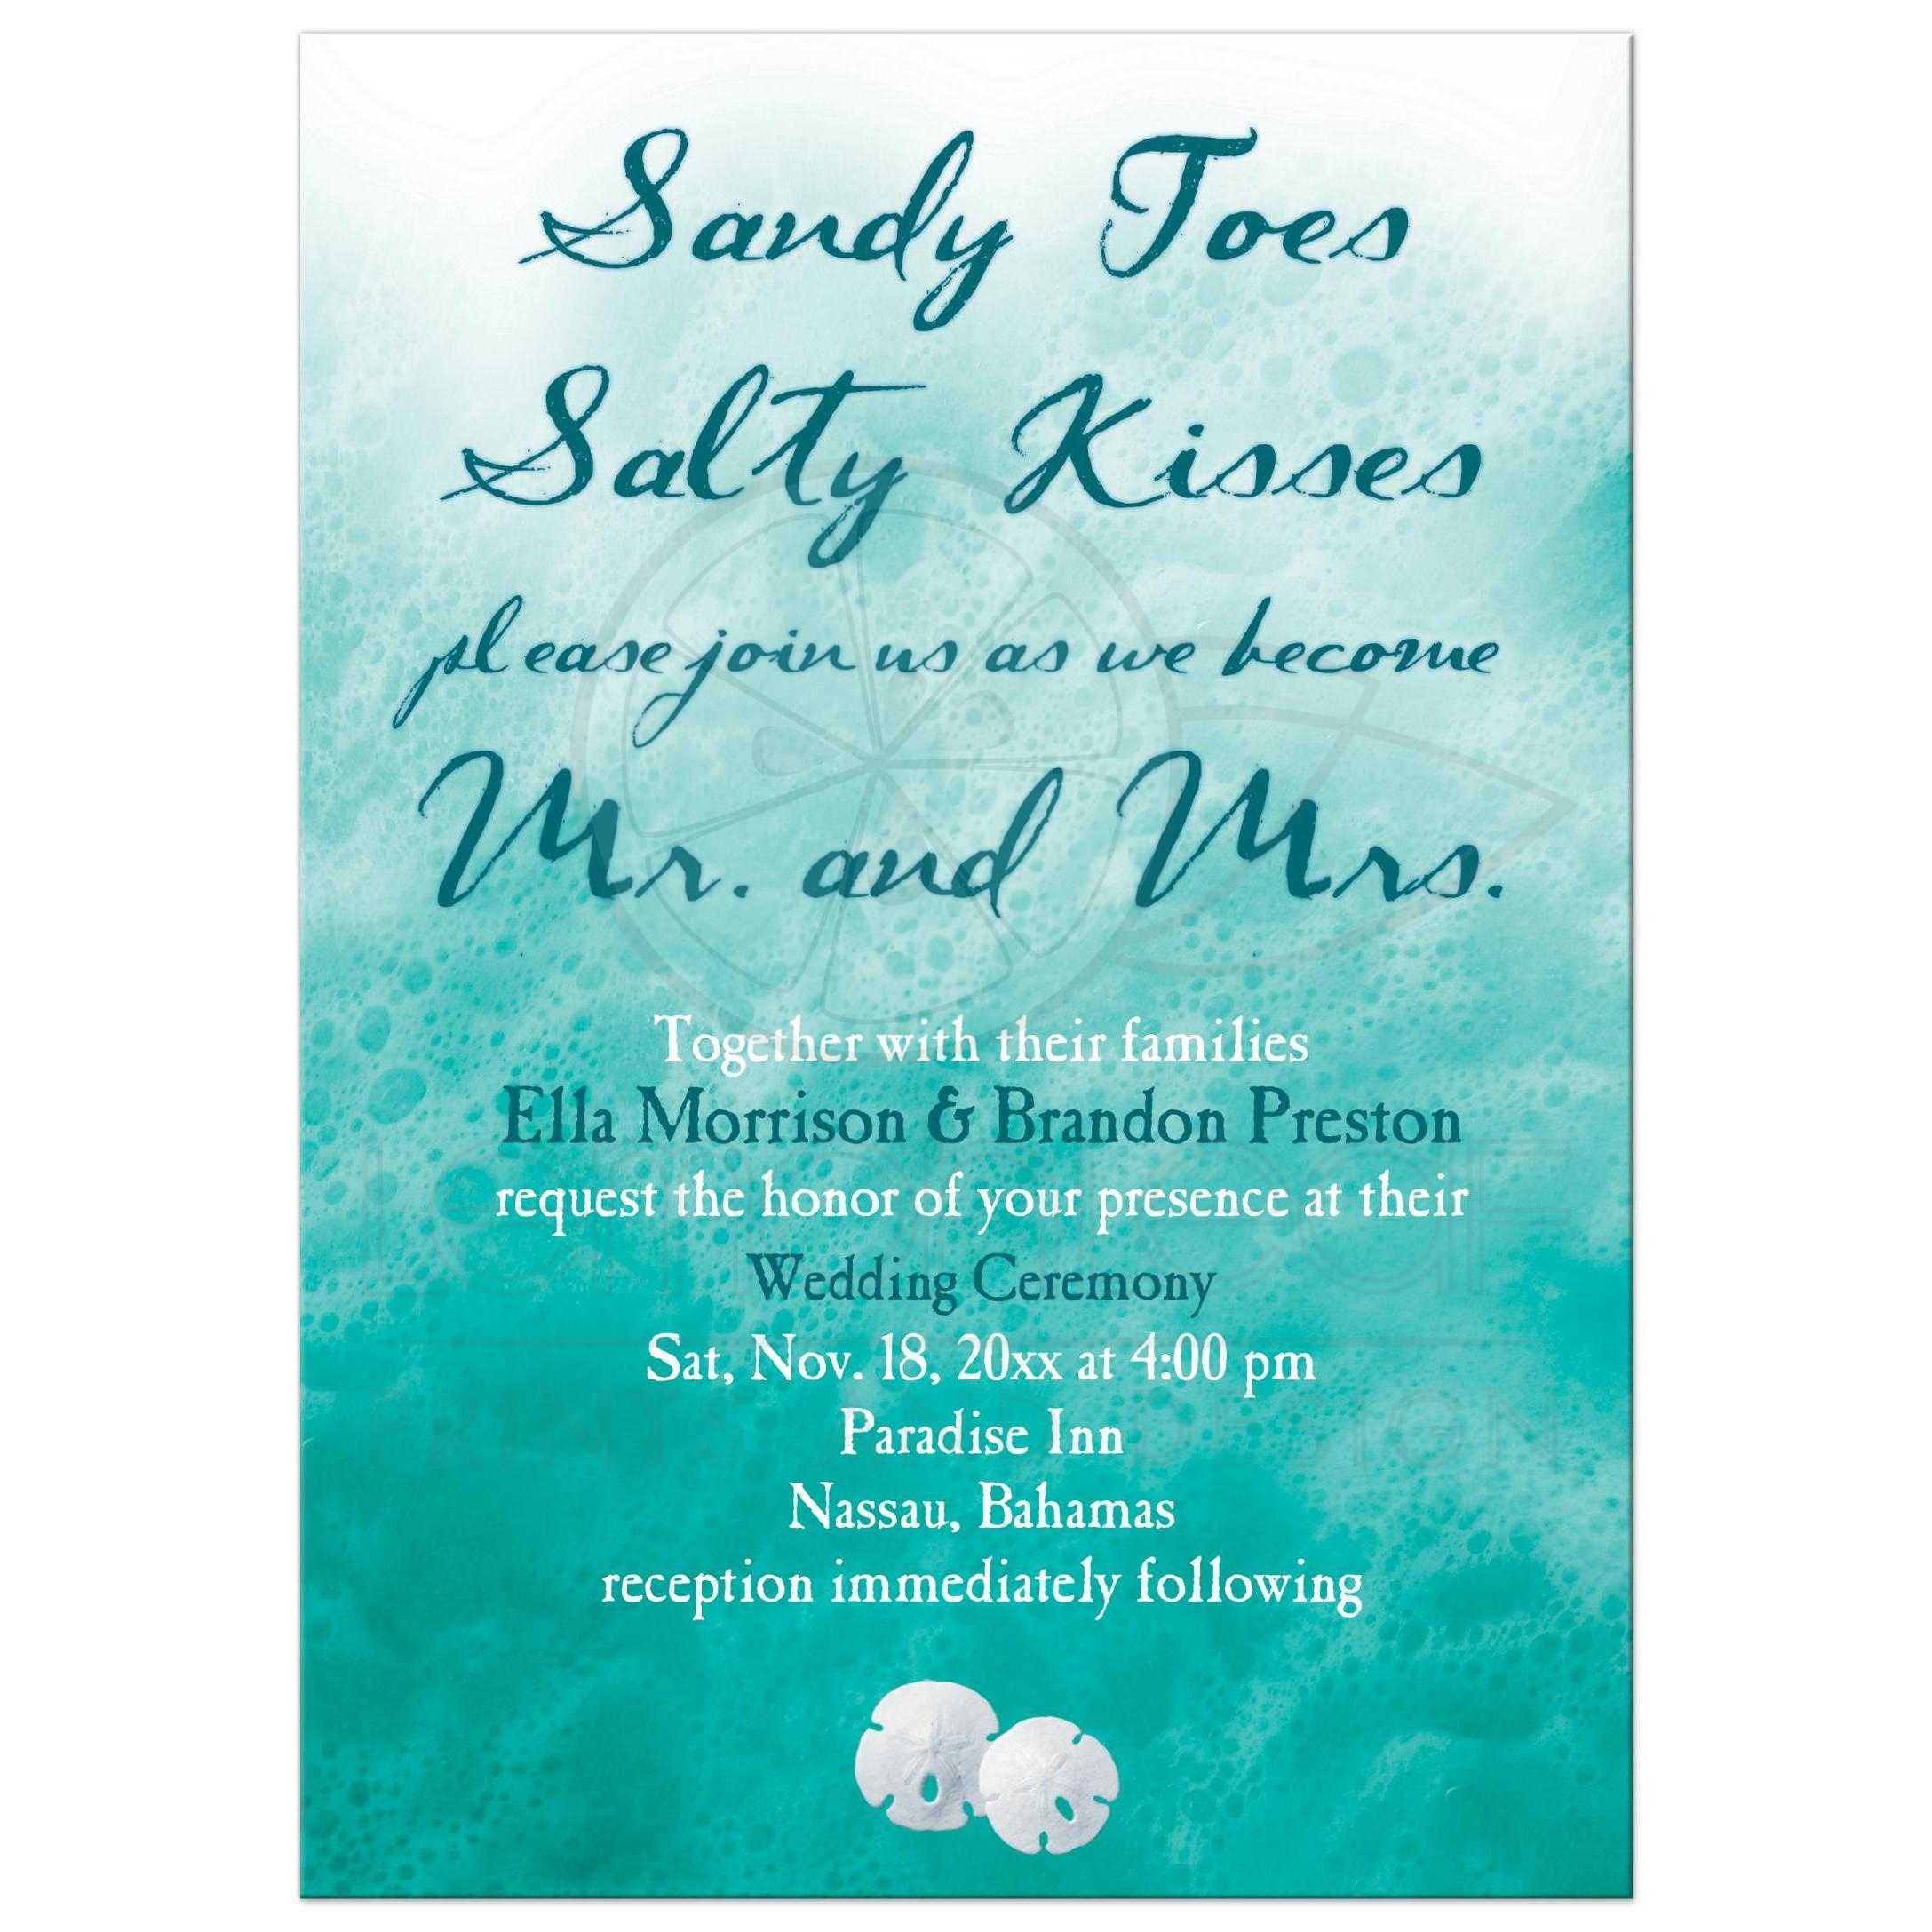 Wedding Invitation Turquoise Ocean Waves And Beach Sand